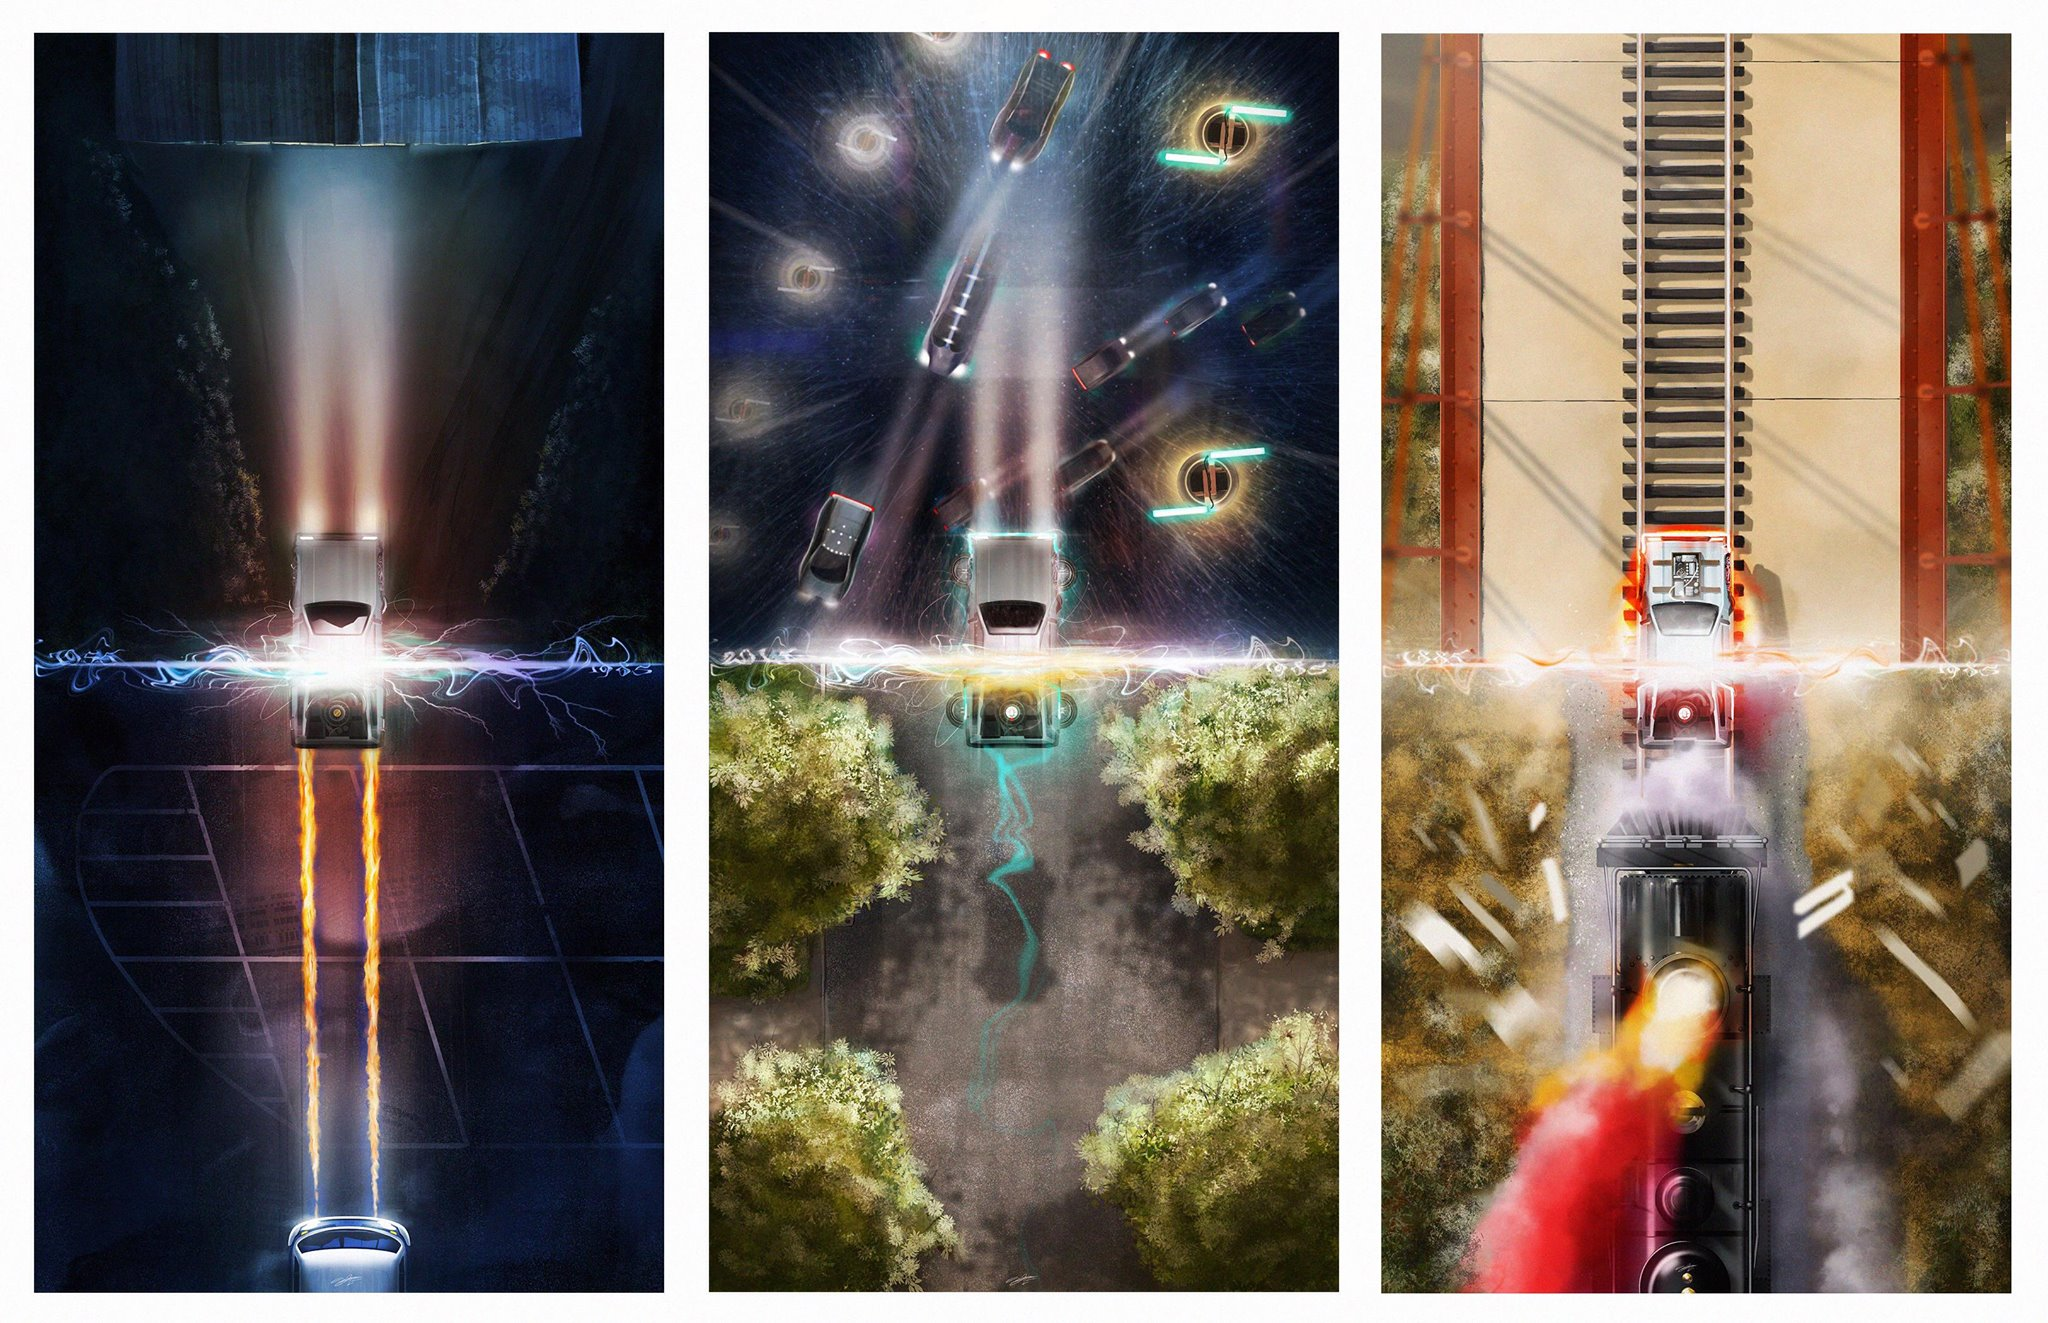 """88MPH"" by Andy Fairhurst.  (3) 12"" x 24"" Giclees.  Ed of 125 N.  $35 each : $95 set"